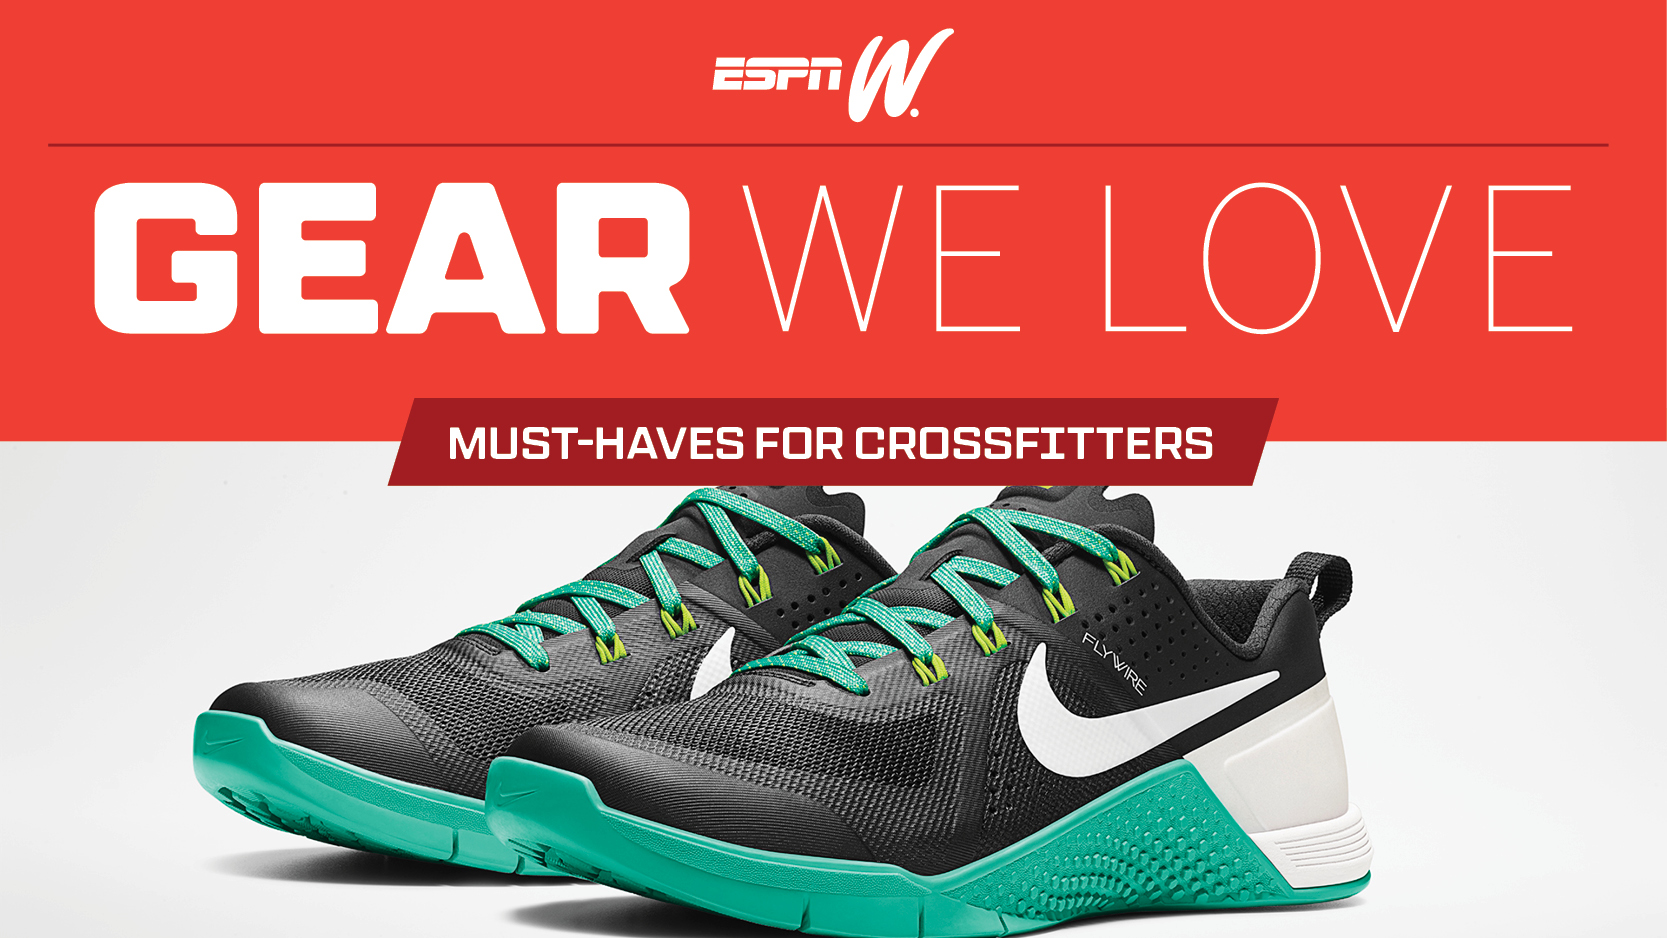 espnW Gear We Love CrossFit